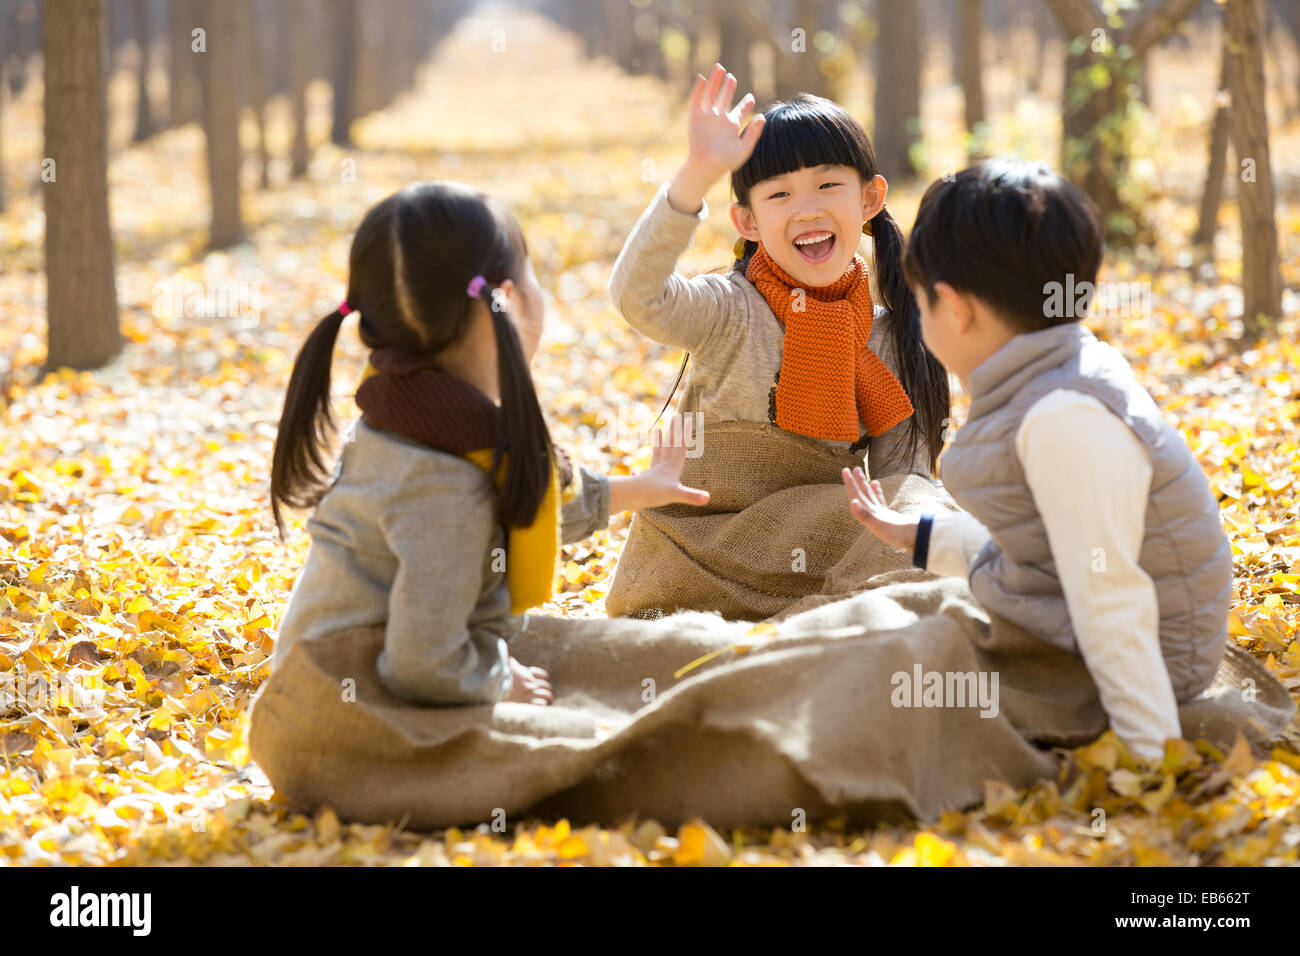 Three children playing in autumn woods - Stock Image